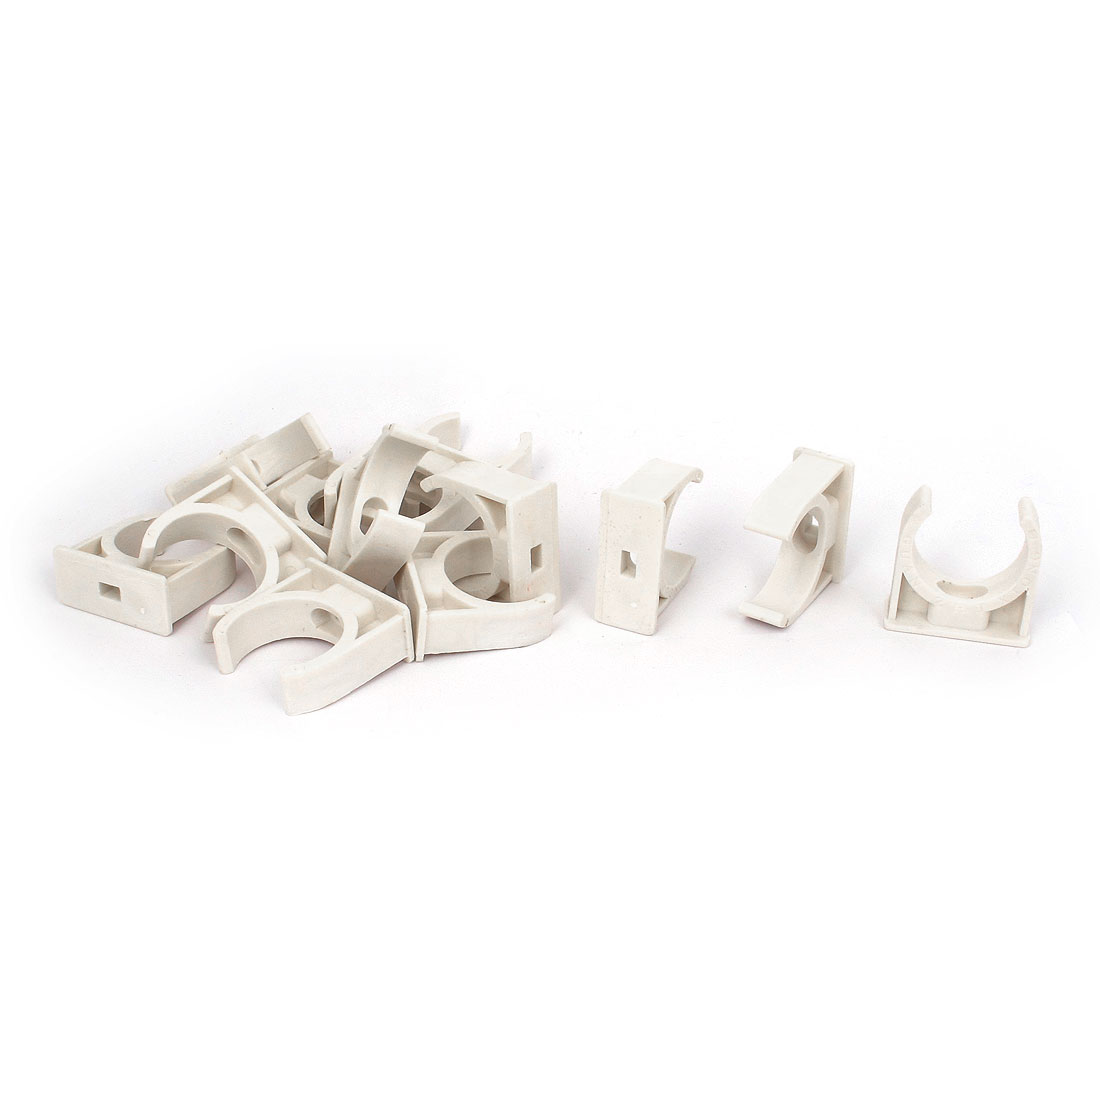 13pcs 30mm Diameter White Water Supply Pipe Tube Hose Clamps Snap in Clips Fittings